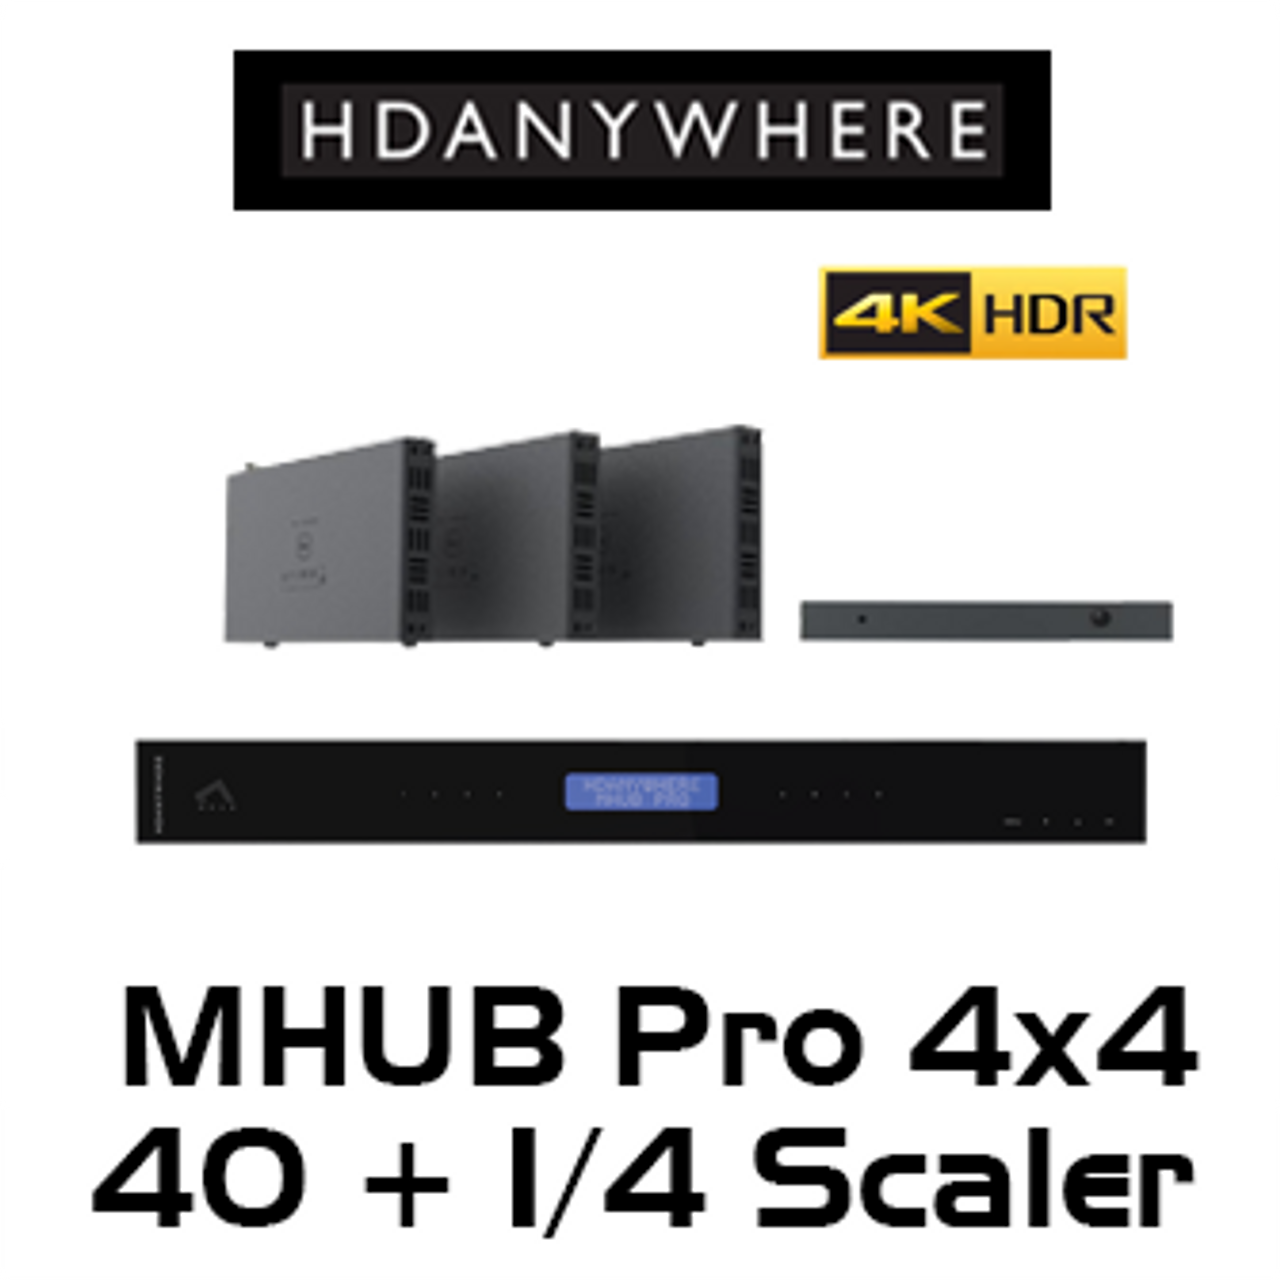 HDAnywhere MHUB Pro 4x4 40m 4K HDR HDMI/HDBaseT Matrix Switcher with 1/4  Scaling Receiver